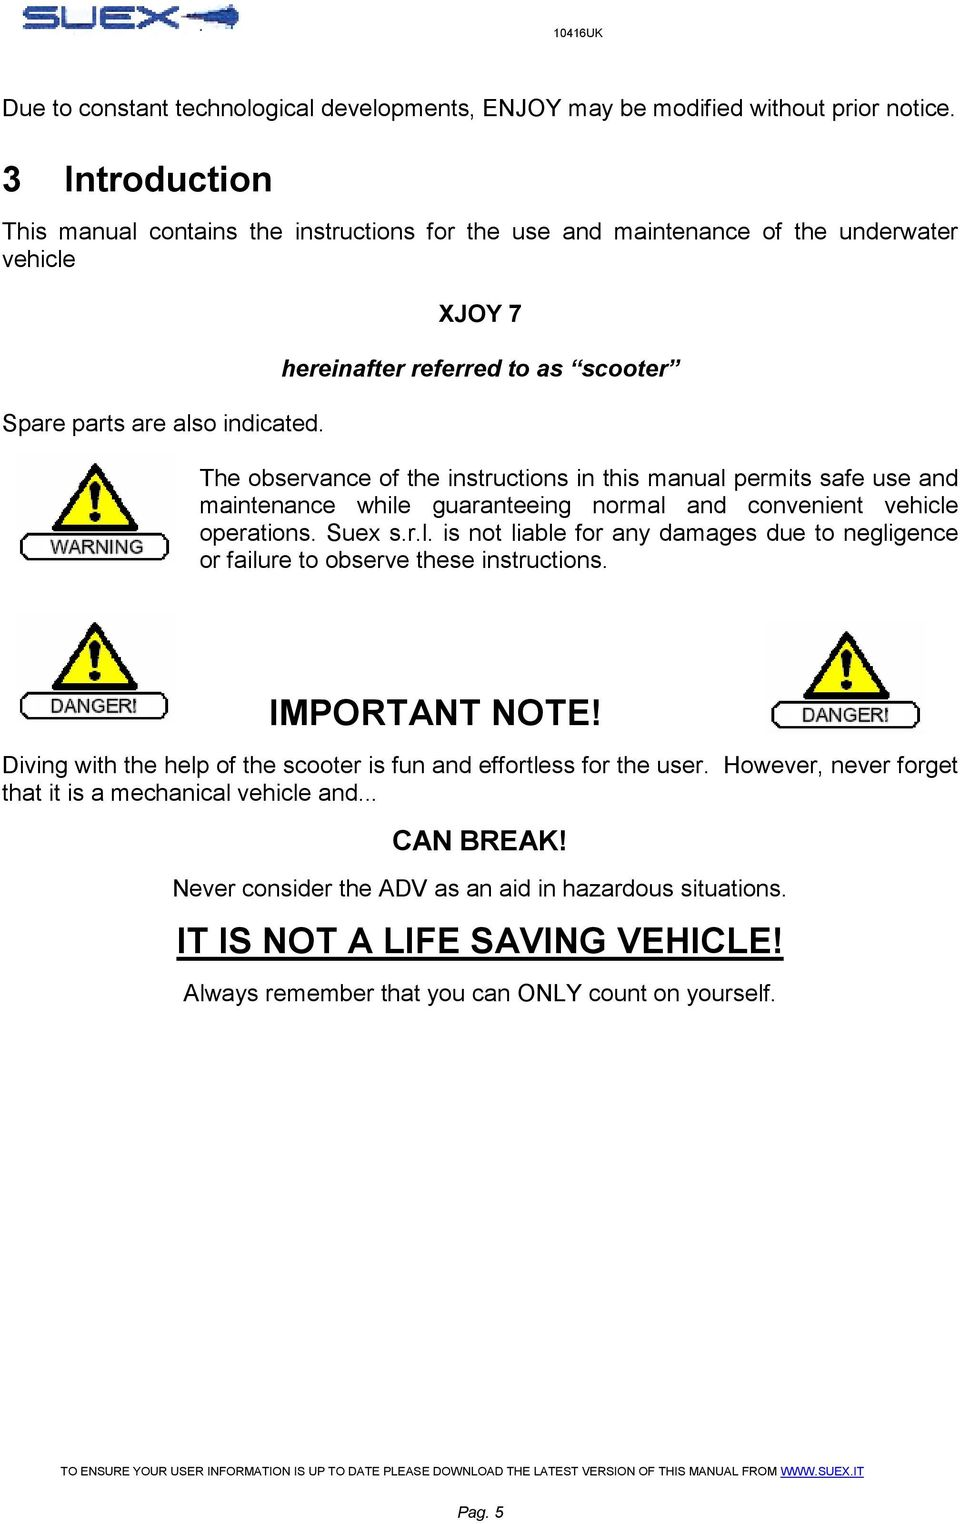 XJOY 7 hereinafter referred to as scooter The observance of the instructions in this manual permits safe use and maintenance while guaranteeing normal and convenient vehicle operations. Suex s.r.l. is not liable for any damages due to negligence or failure to observe these instructions.